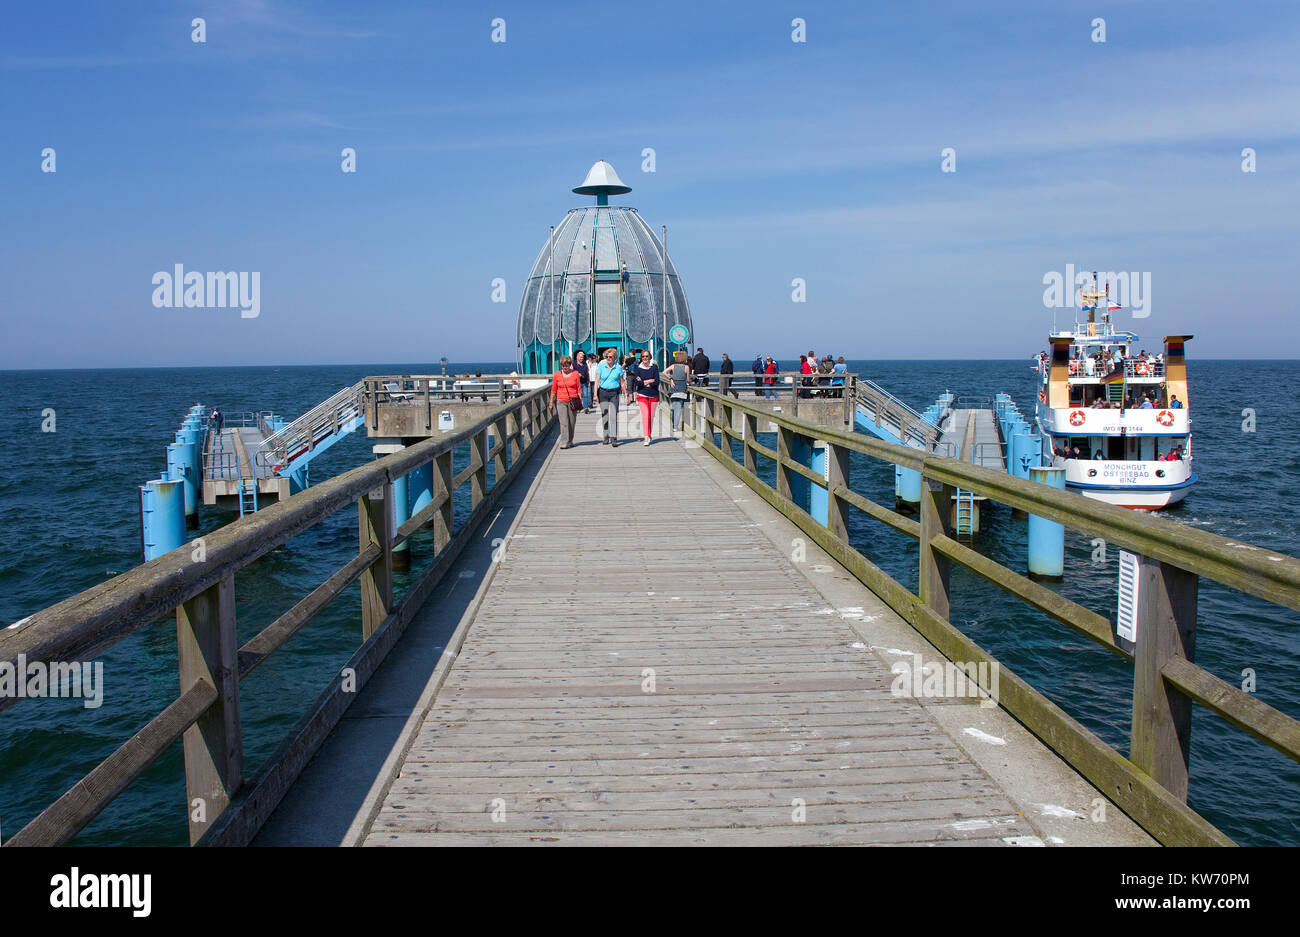 Dive bell at the end of the pier, Sellin, Ruegen island, Mecklenburg-Western Pomerania, Baltic Sea, Germany, Europe Stock Photo